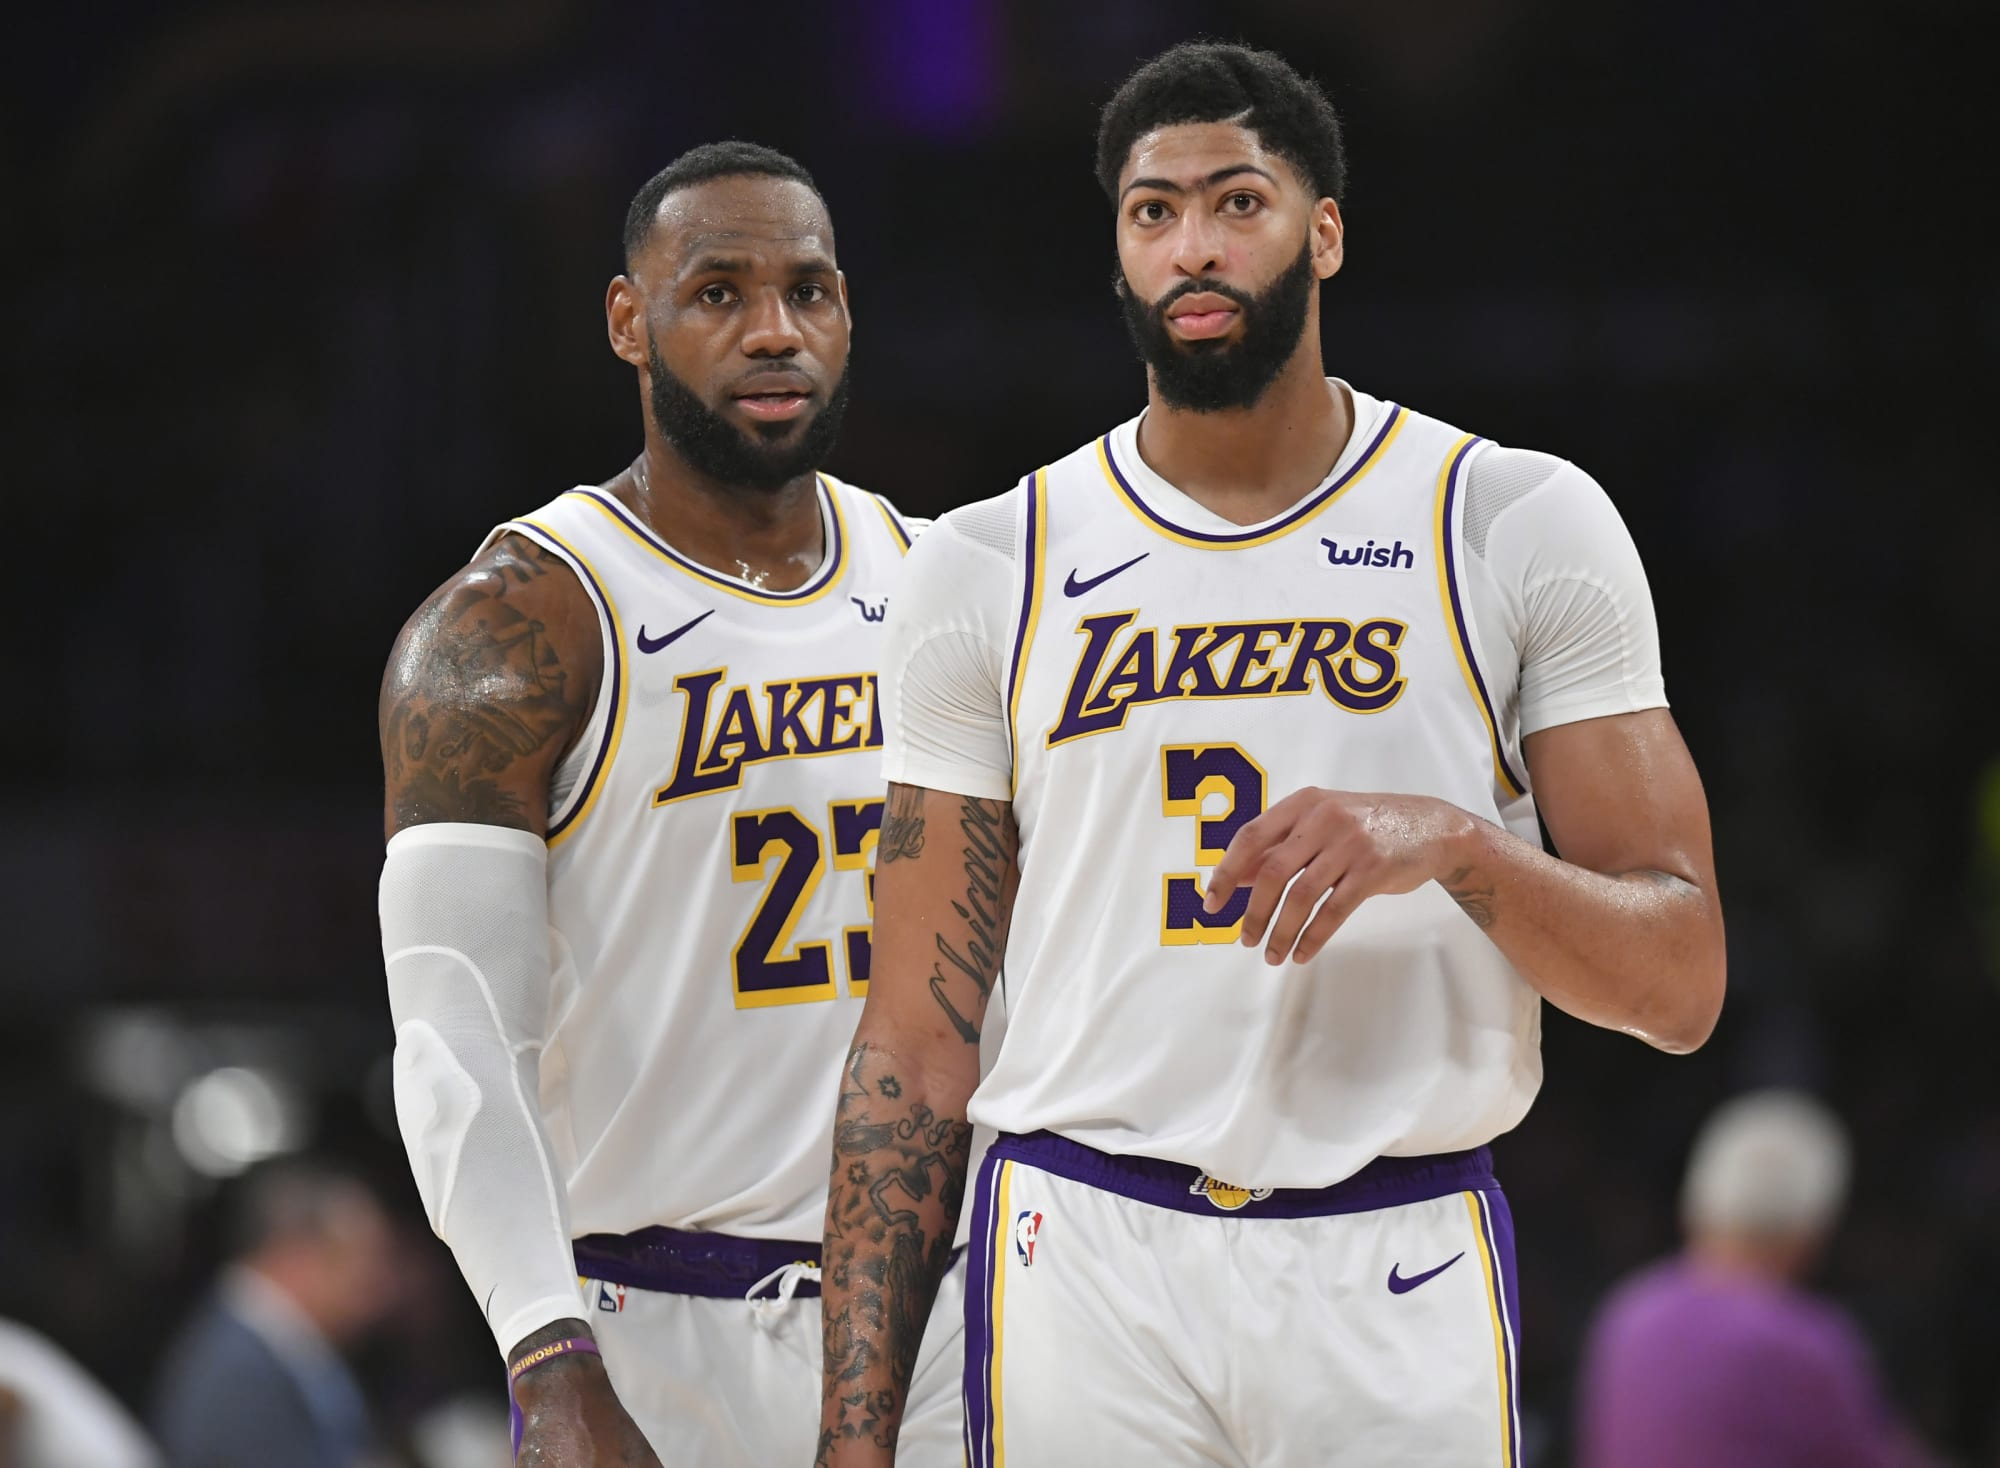 DraftKings NBA picks August 3: Don't pay up for Lakers